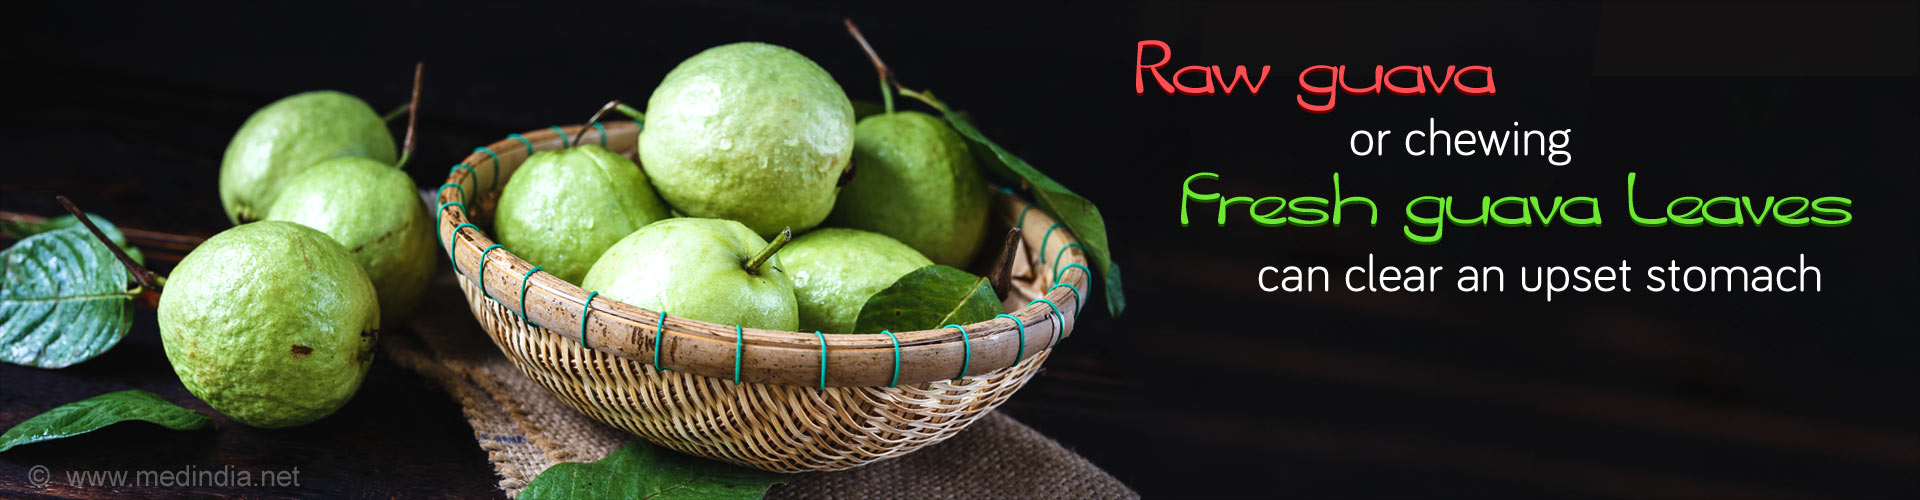 Raw guava or chewing fresh guava leaves can clear an upset stomach